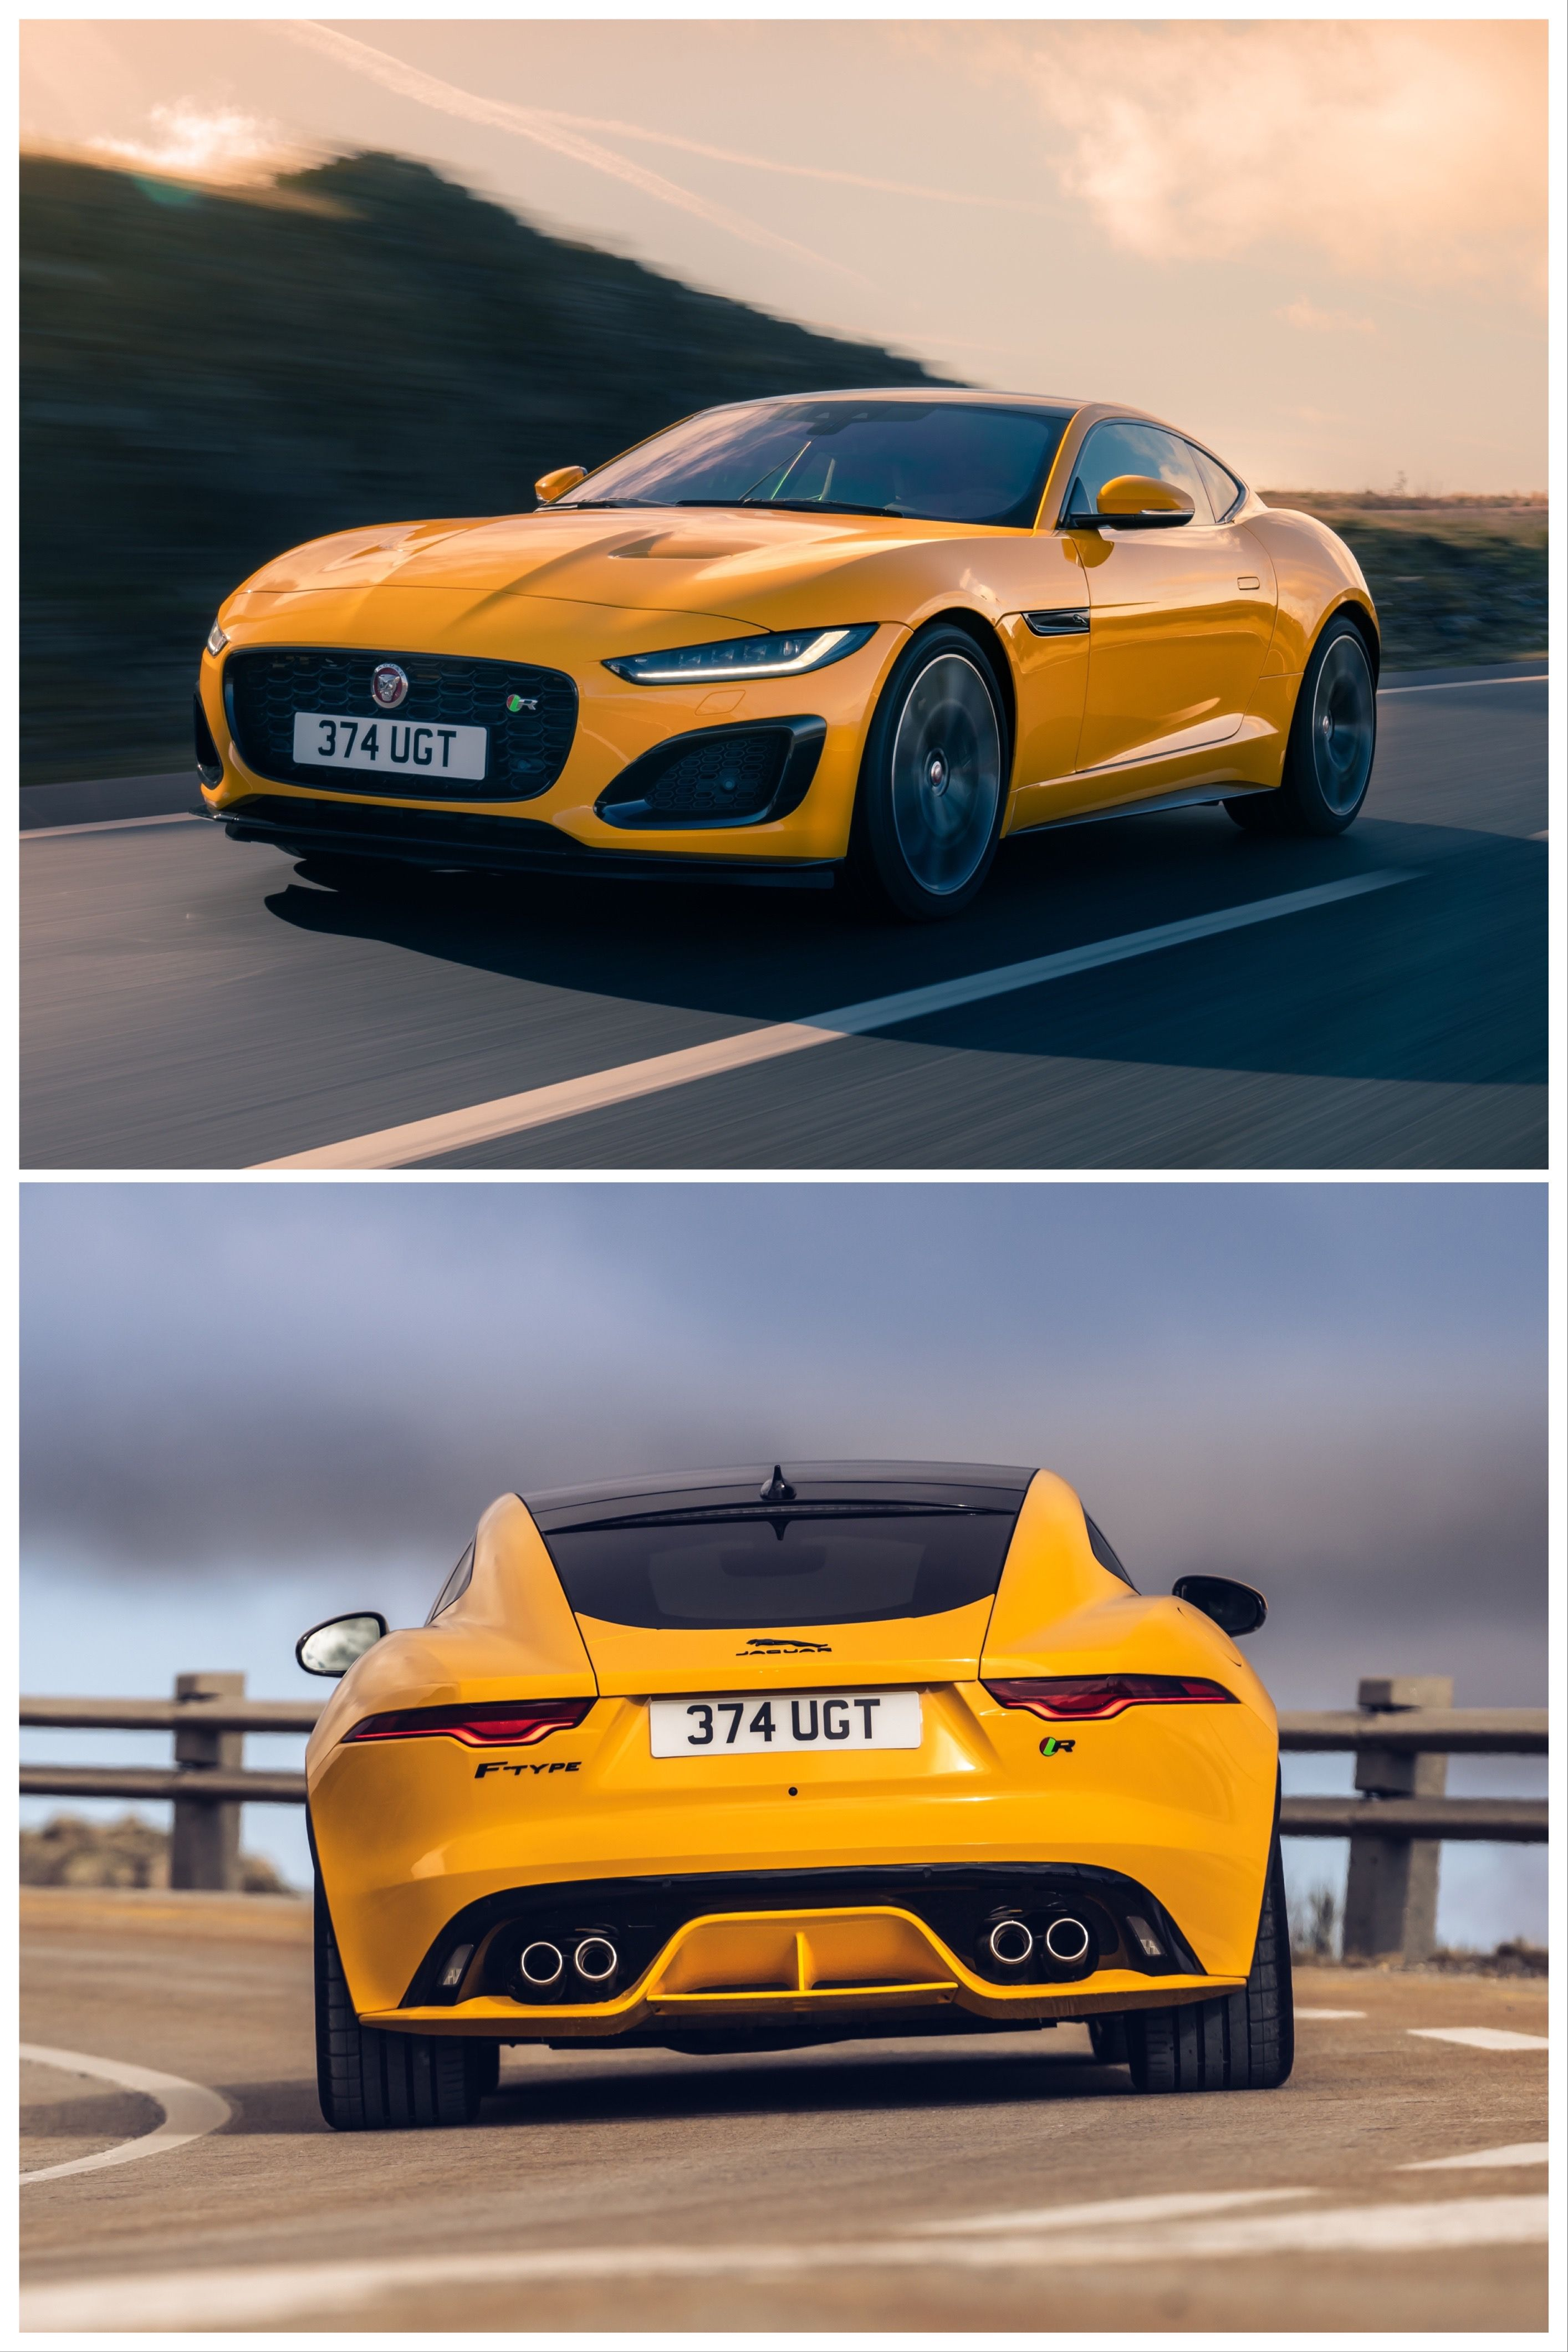 Feline Of Fancy We Get Our First Drive Of The 2021 Jaguar F Type Coupe And Convertible In 2020 Jaguar F Type Coupe Jaguar